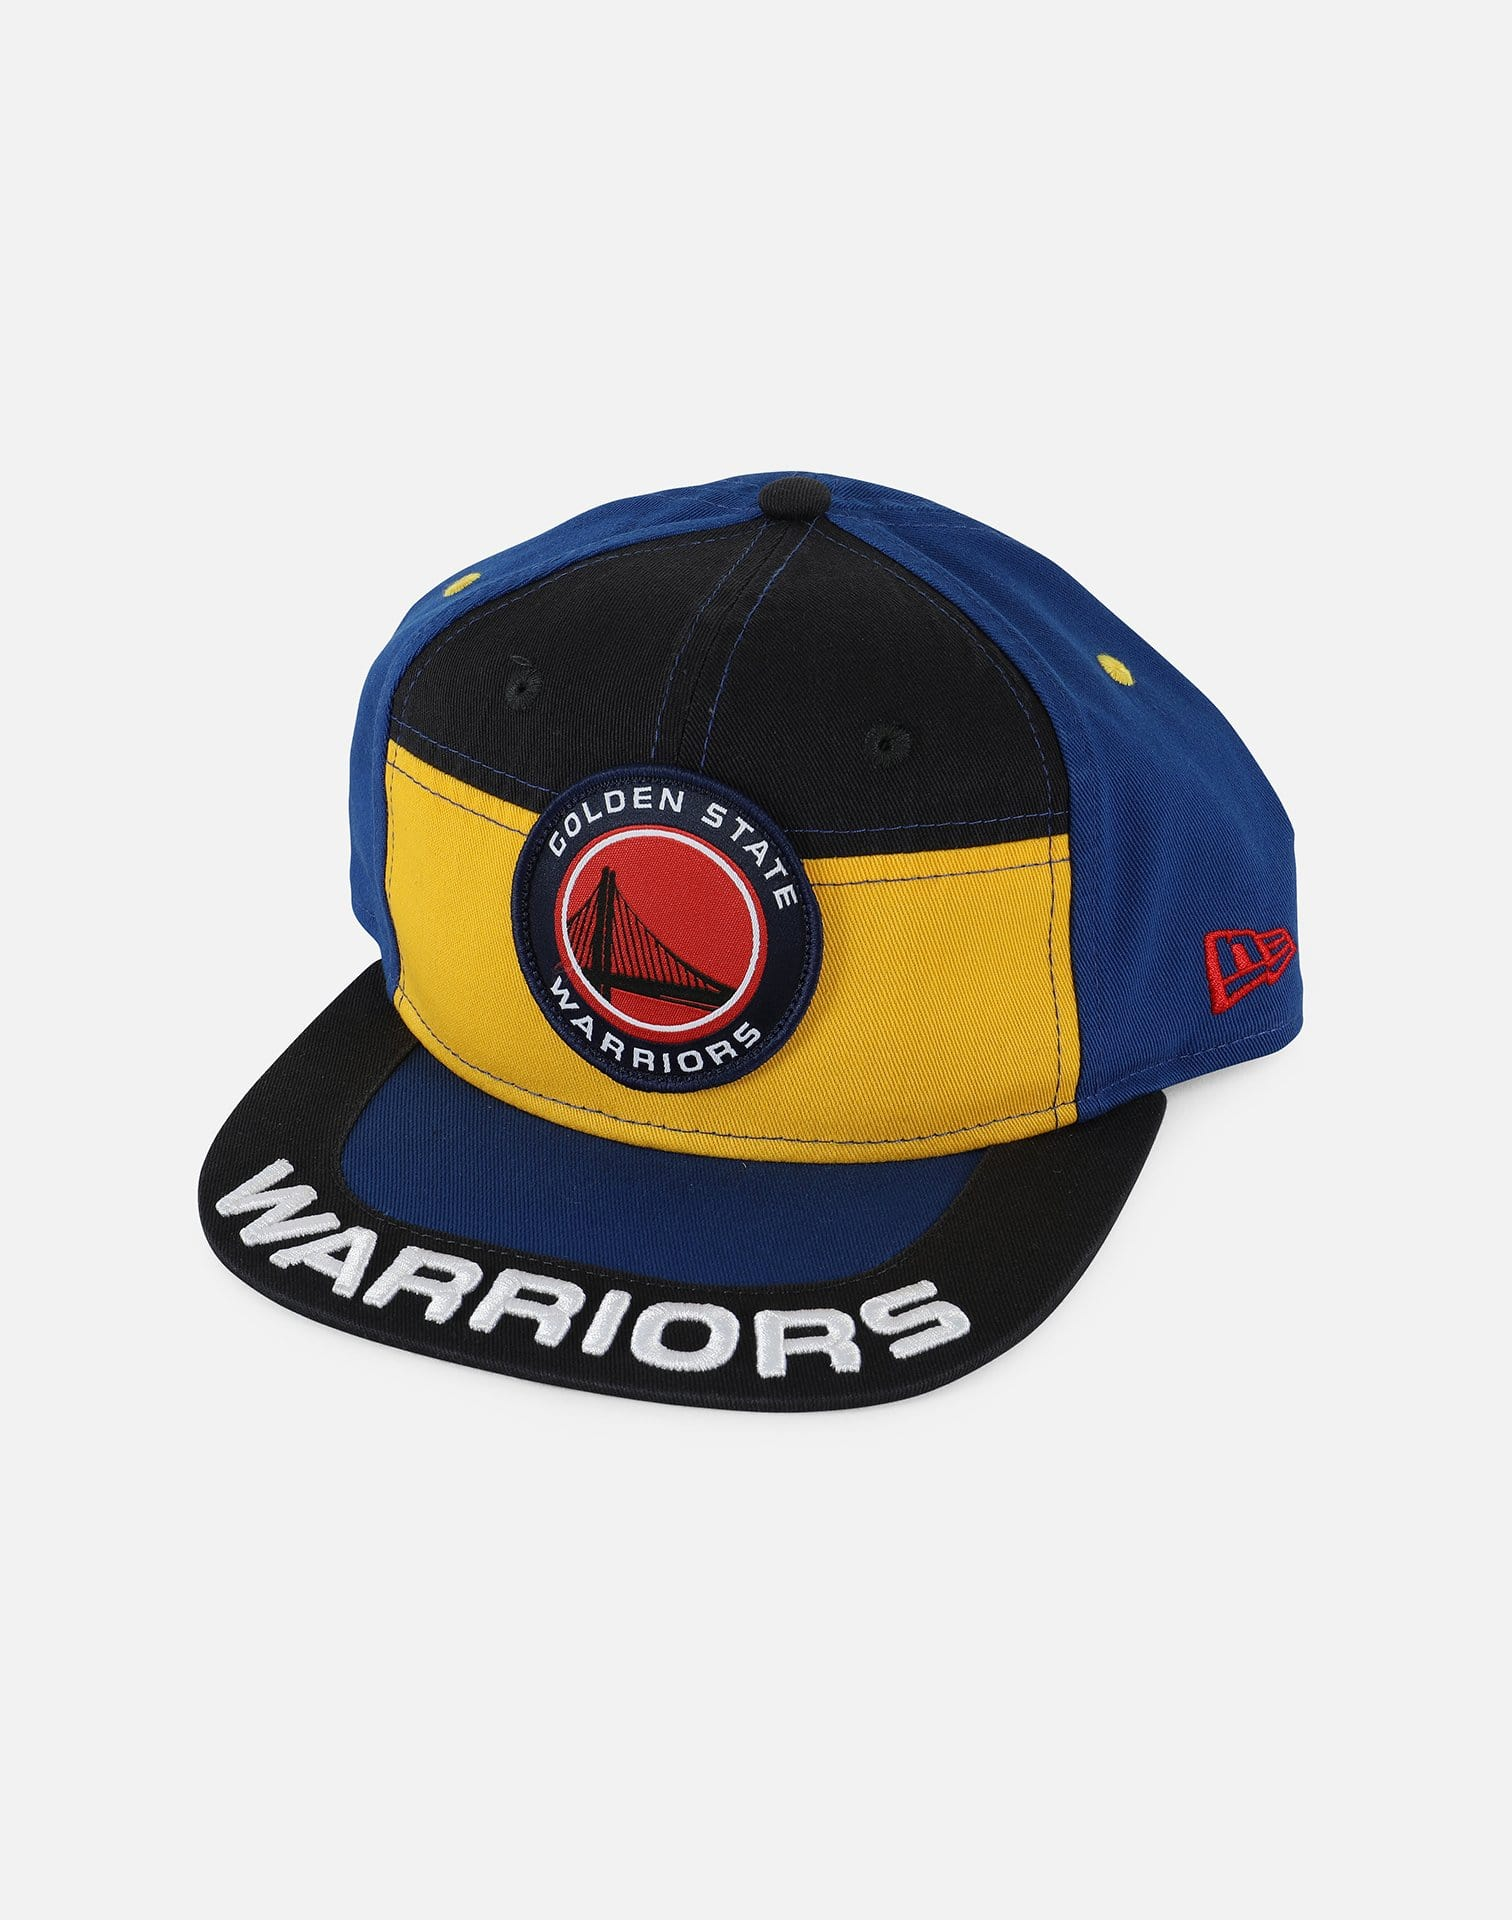 New Era NBA Golden State Warriors Snapback Hat